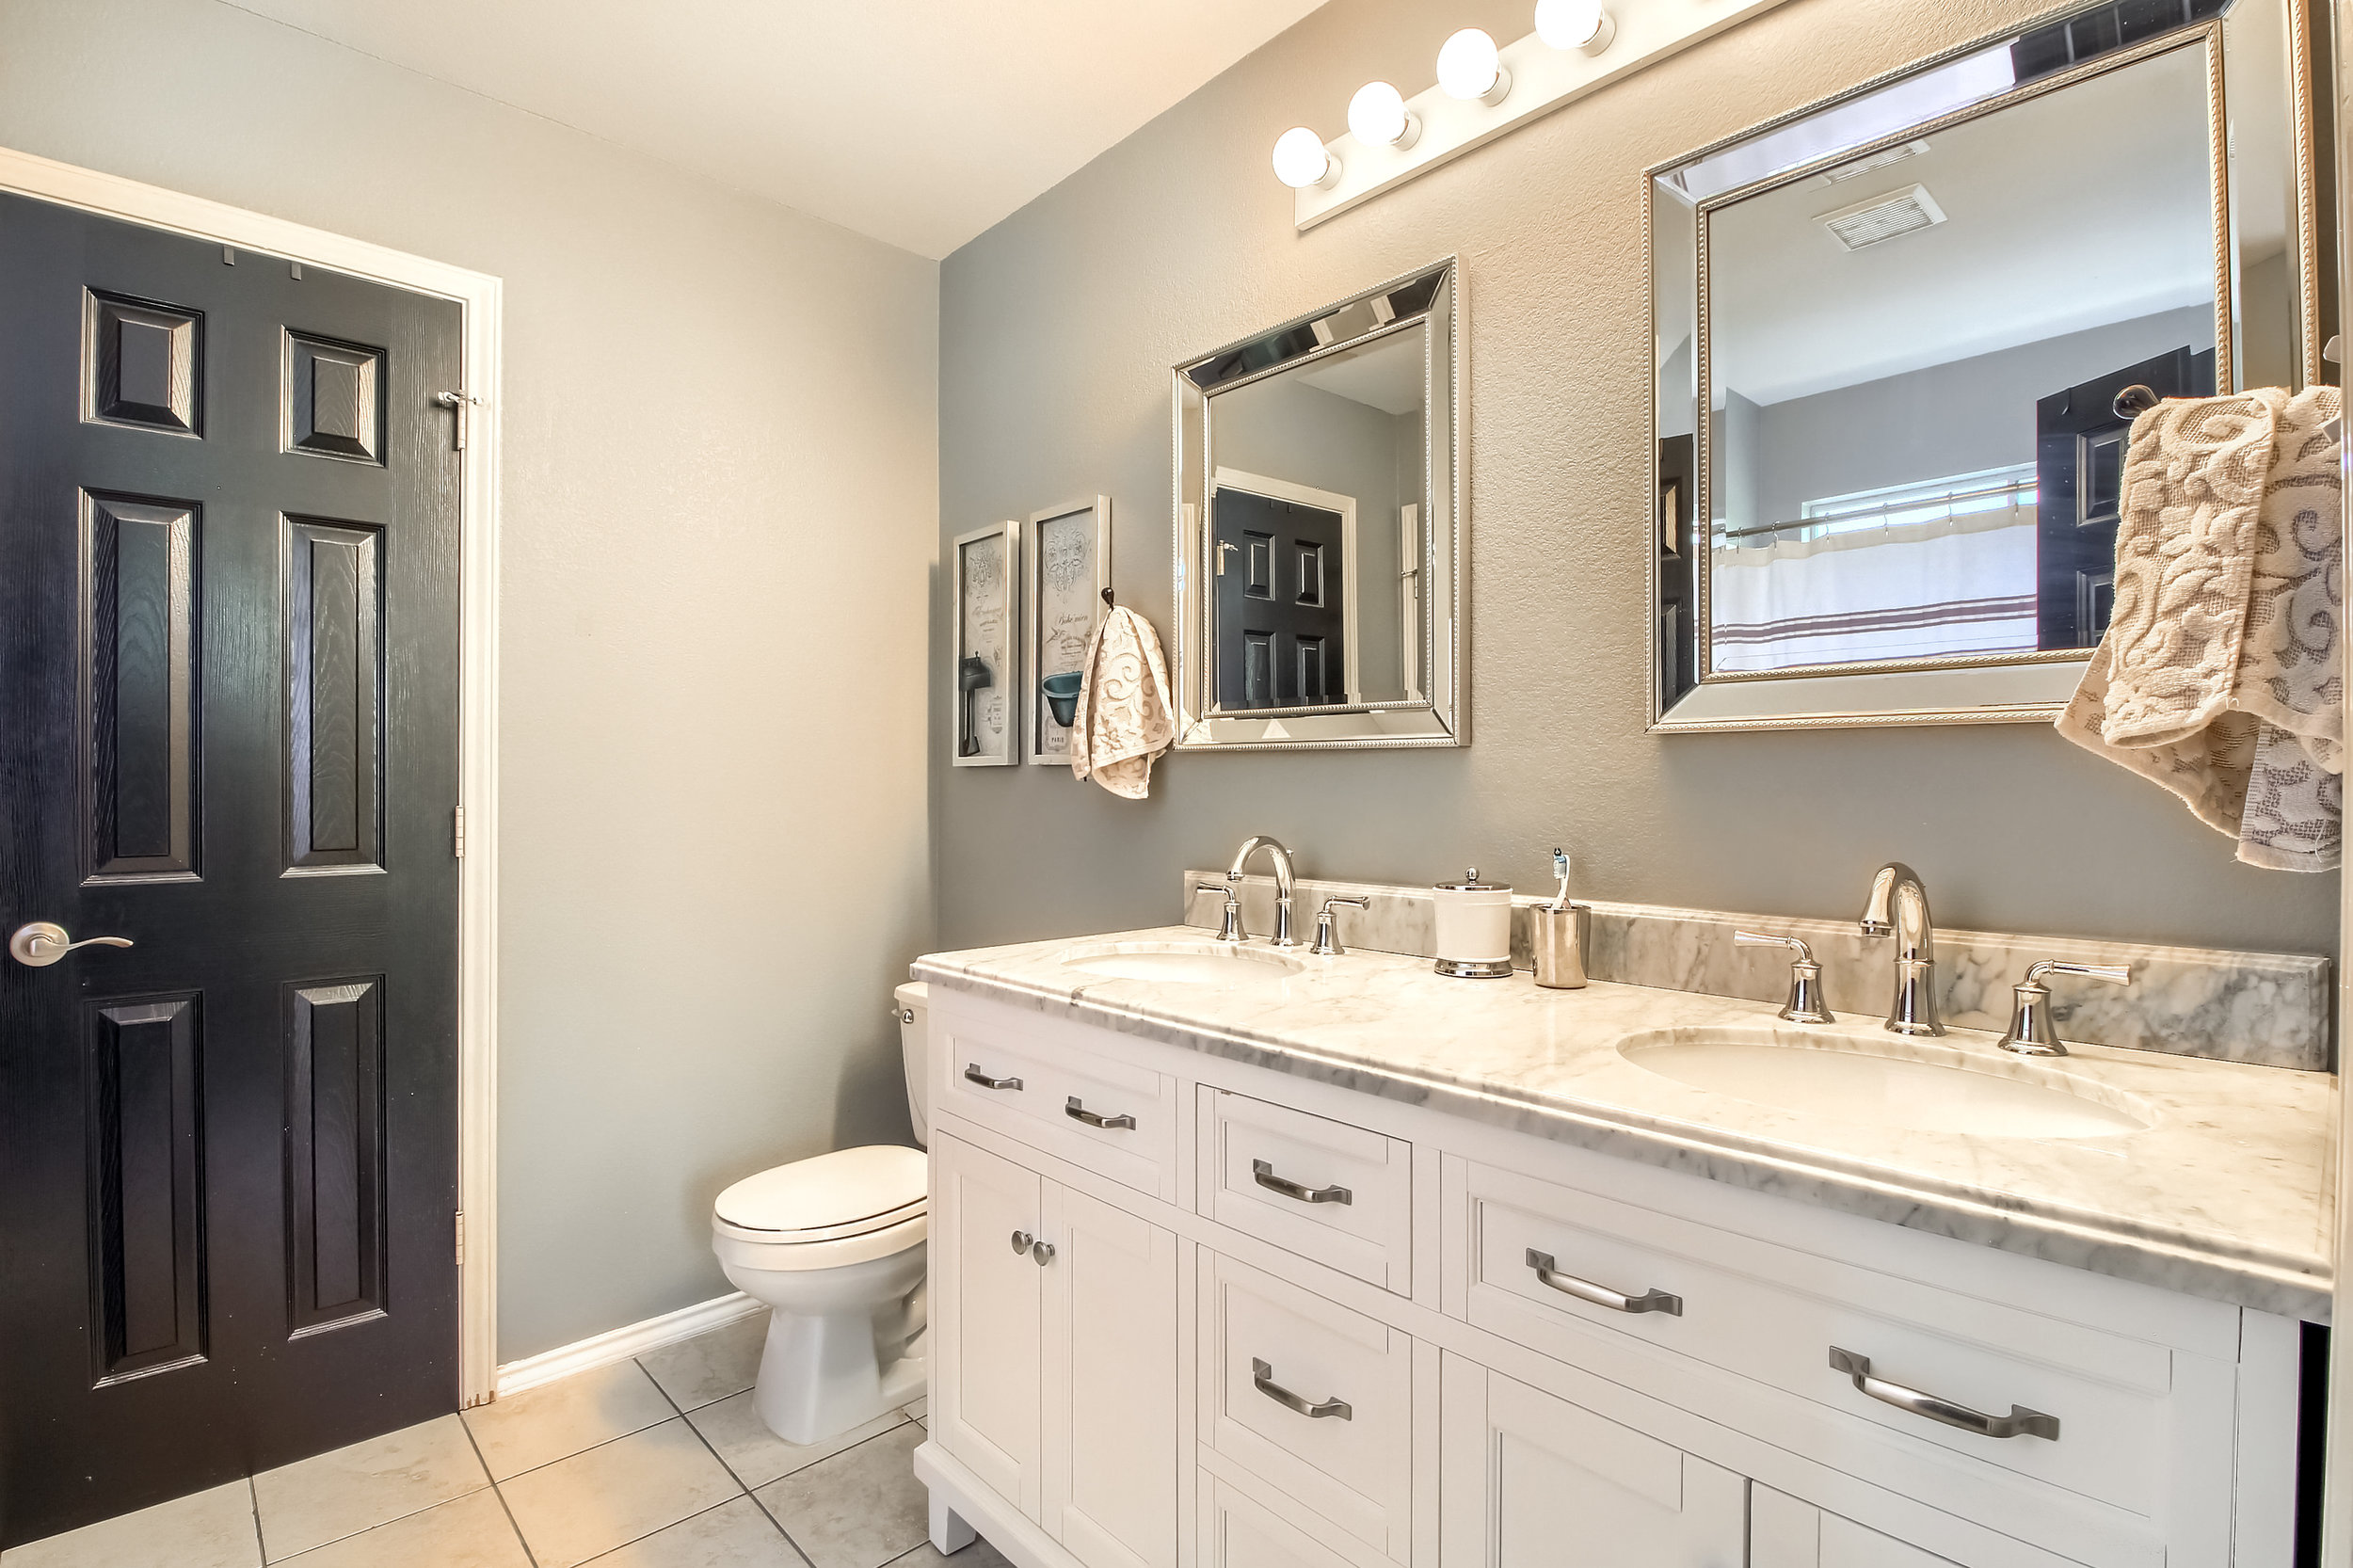 05_Master_Bathroom_IMG_2974.JPG